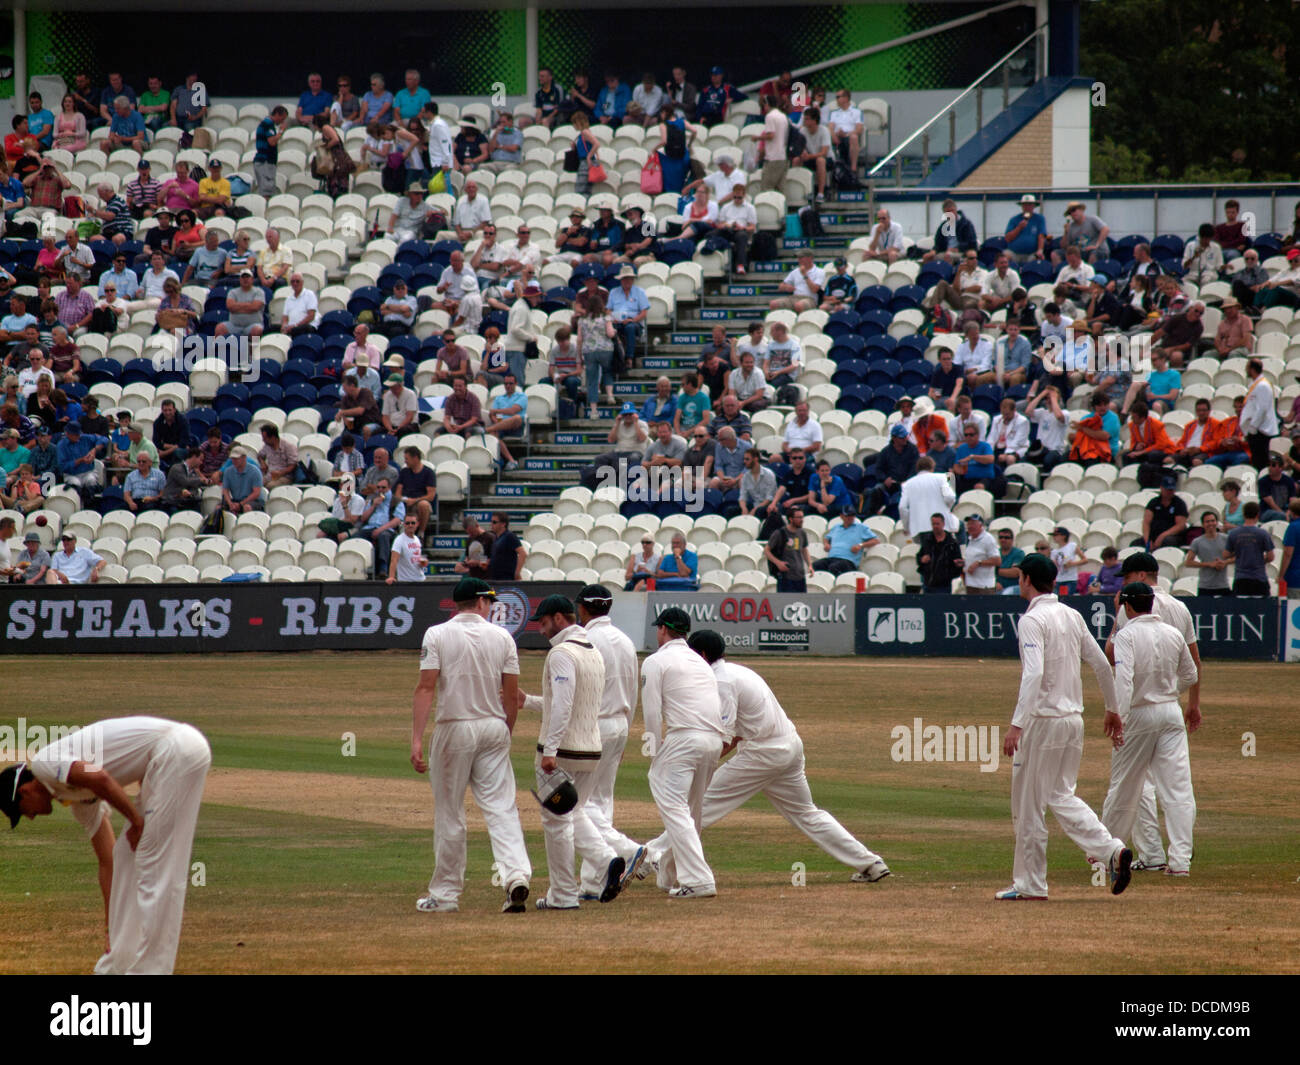 Players return to the pitch at Sussex cricket ground - Stock Image